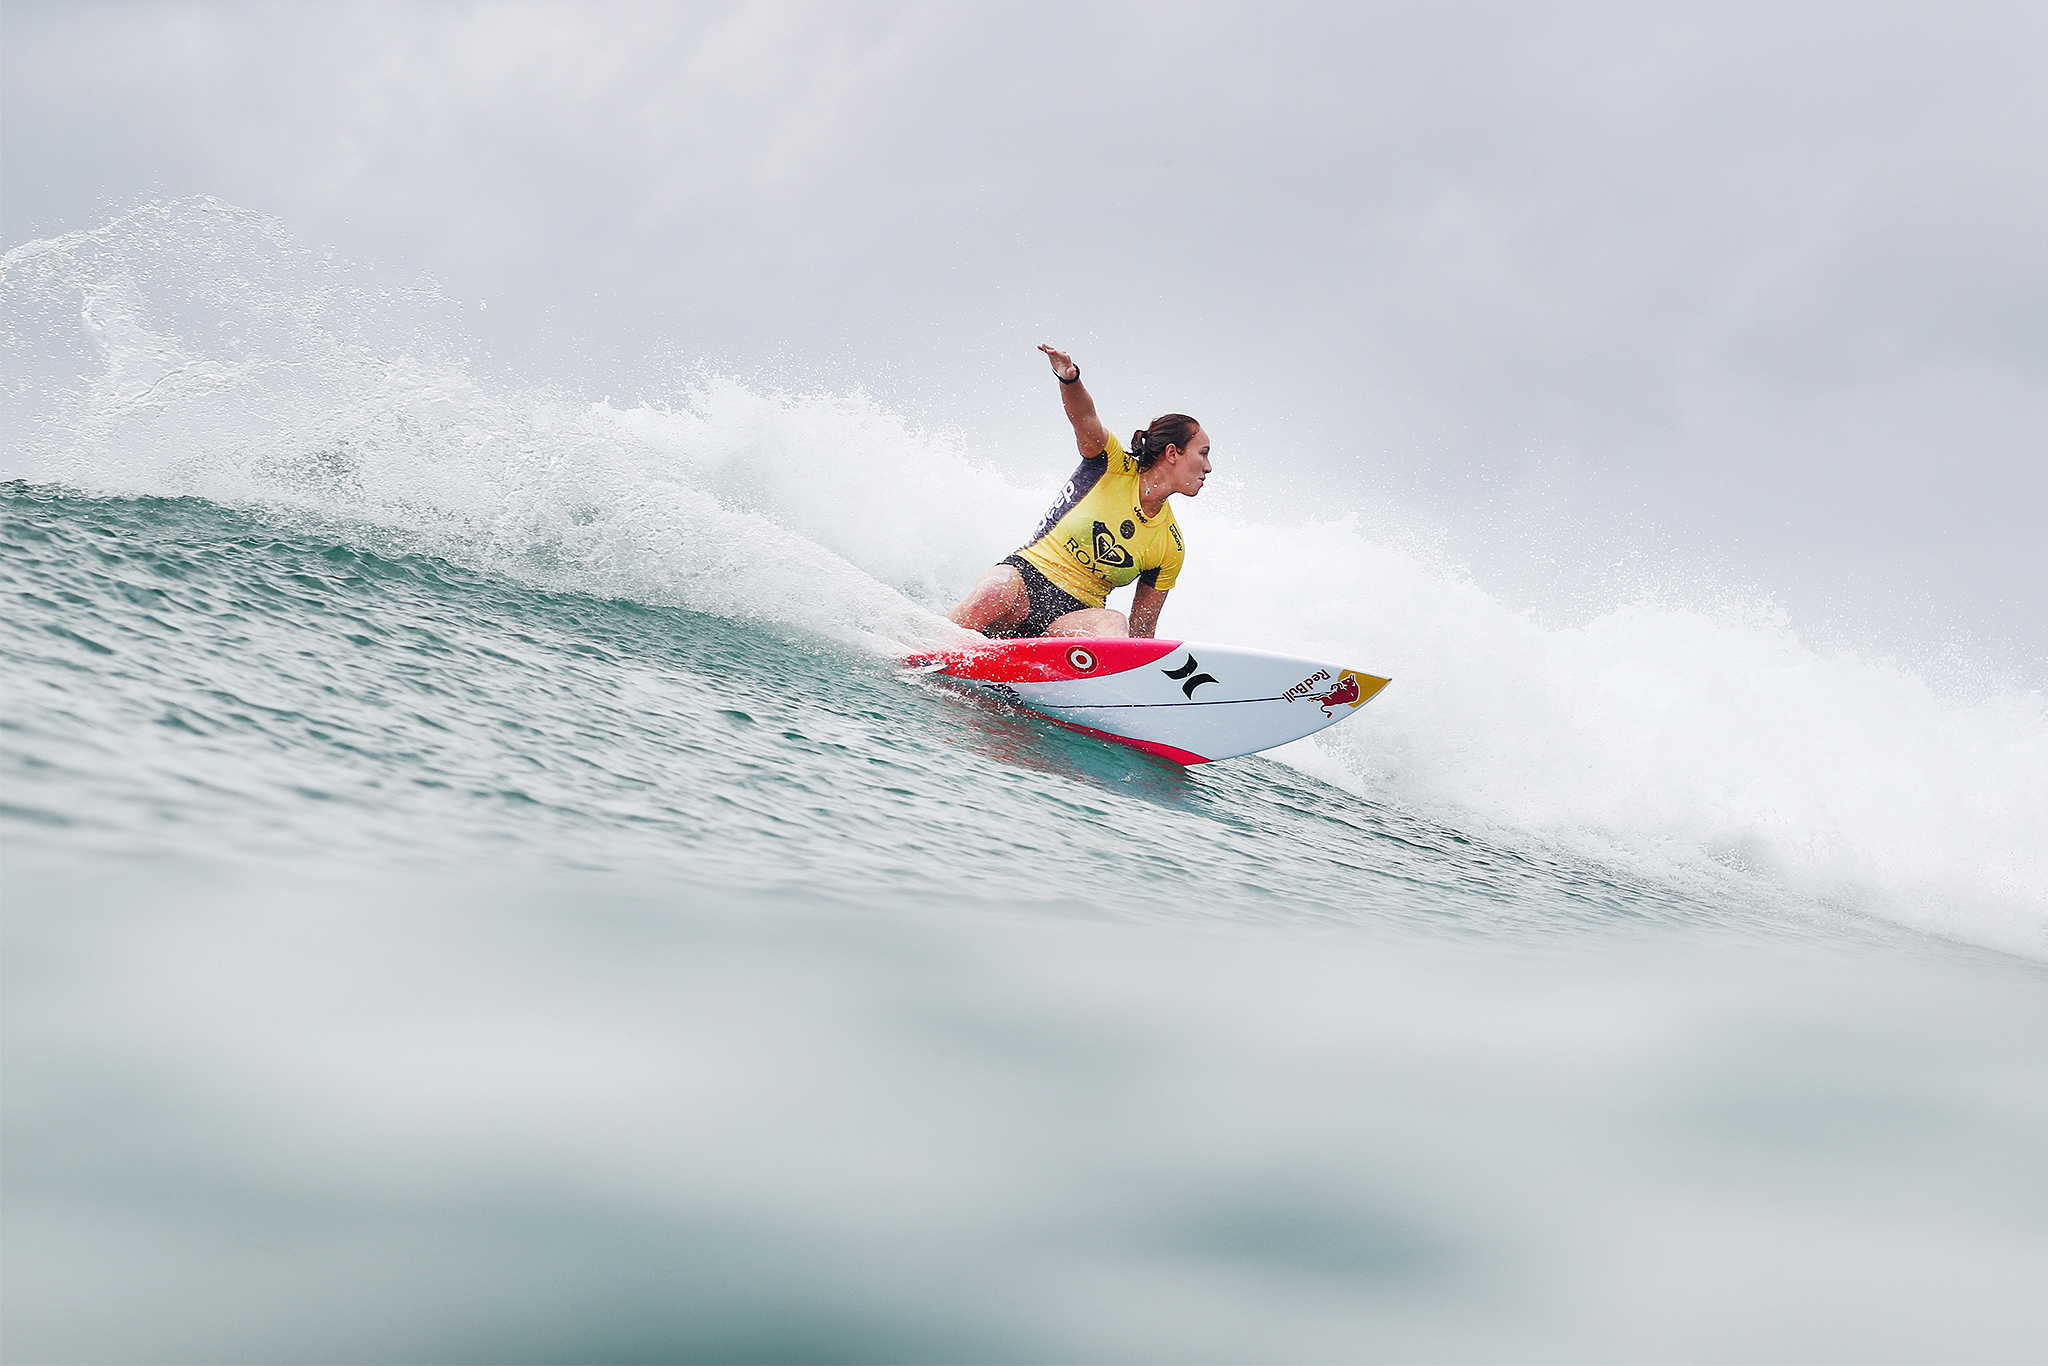 Carissa Moore of Hawaii (pictured) winning her Quarterfinal heat to advance into the Semifinals at the Roxy Pro Gold Coast on Tuesday March 15, 2016. PHOTO CREDIT: © WSL/ KIRSTIN SOCIAL MEDIA TAG: @kirstinscholtz @wslThis is a hand-out image from the World Surf League and is royalty free for editorial use only, no commercial rights granted. The copyright is owned by World Surf League. Sale or license of the images is prohibited. ALL RIGHTS RESERVED.